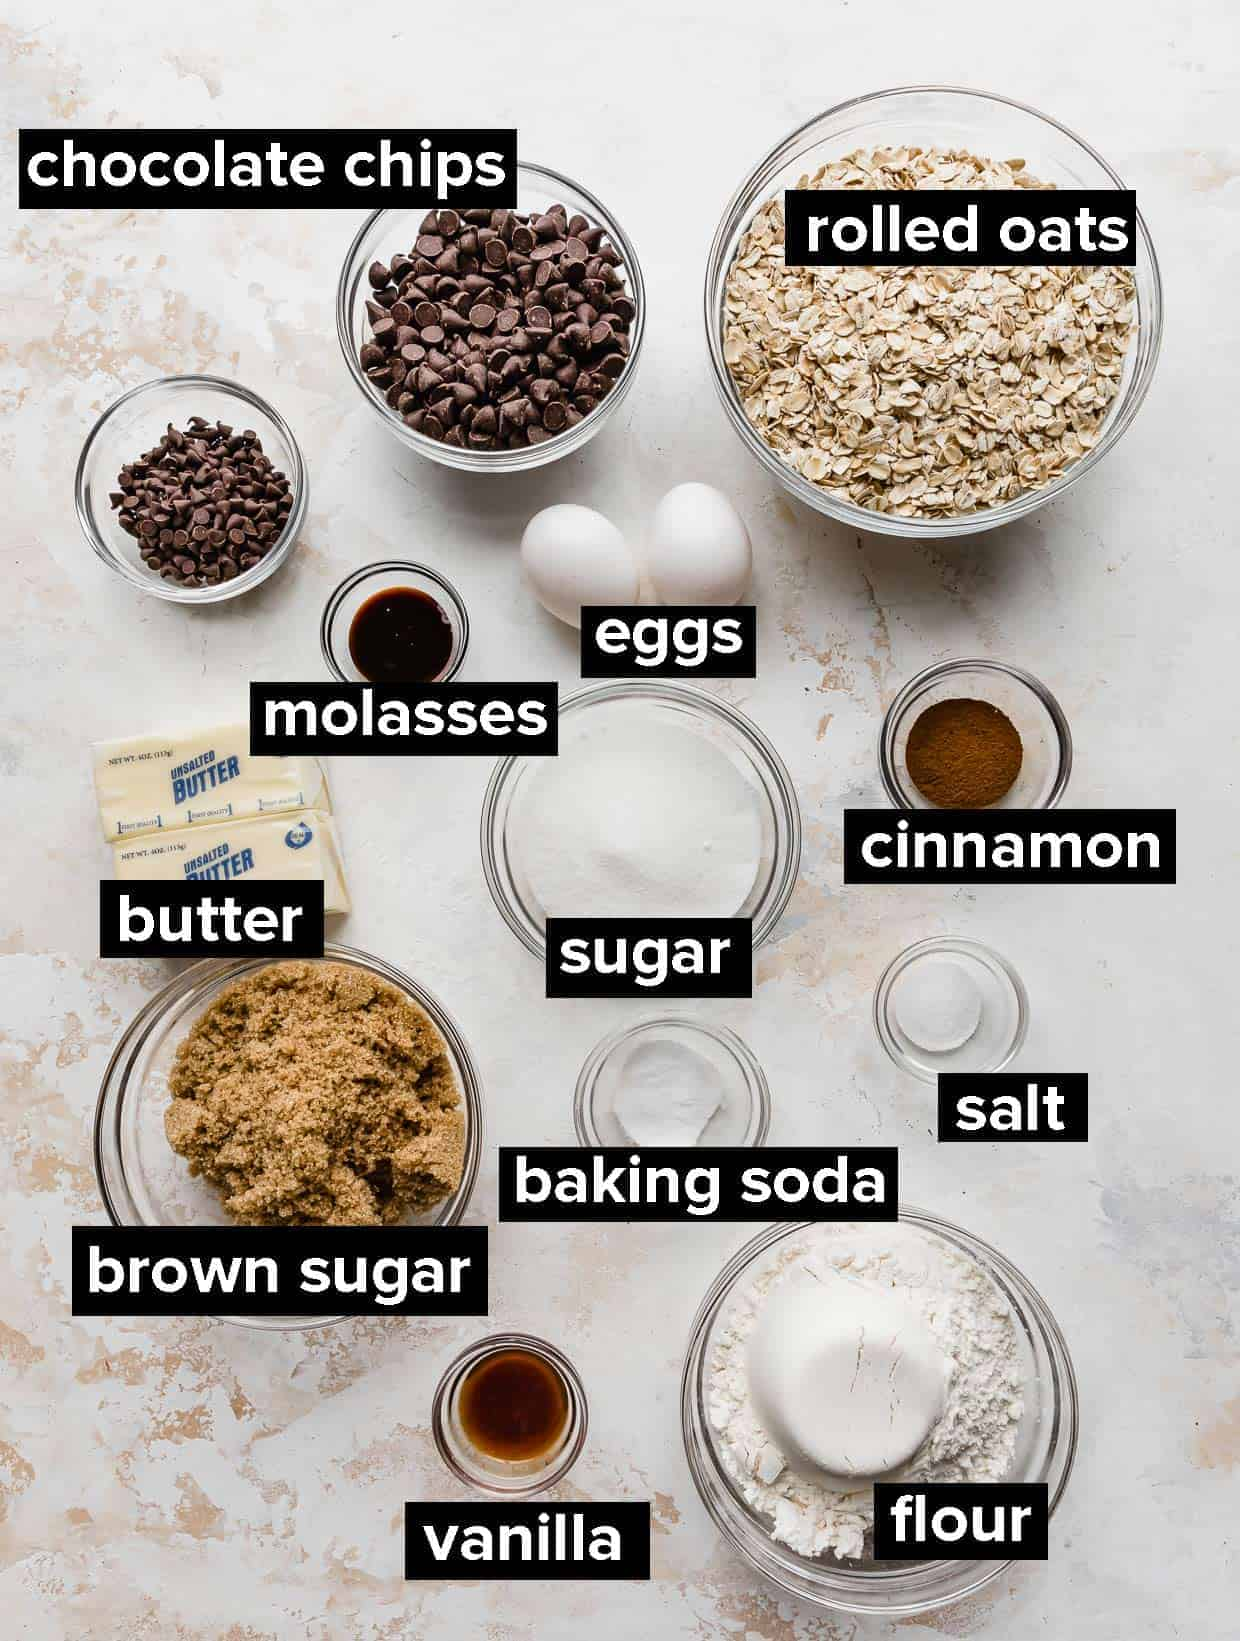 Ingredients used to make Oatmeal Chocolate Chip Cookies on a white background.